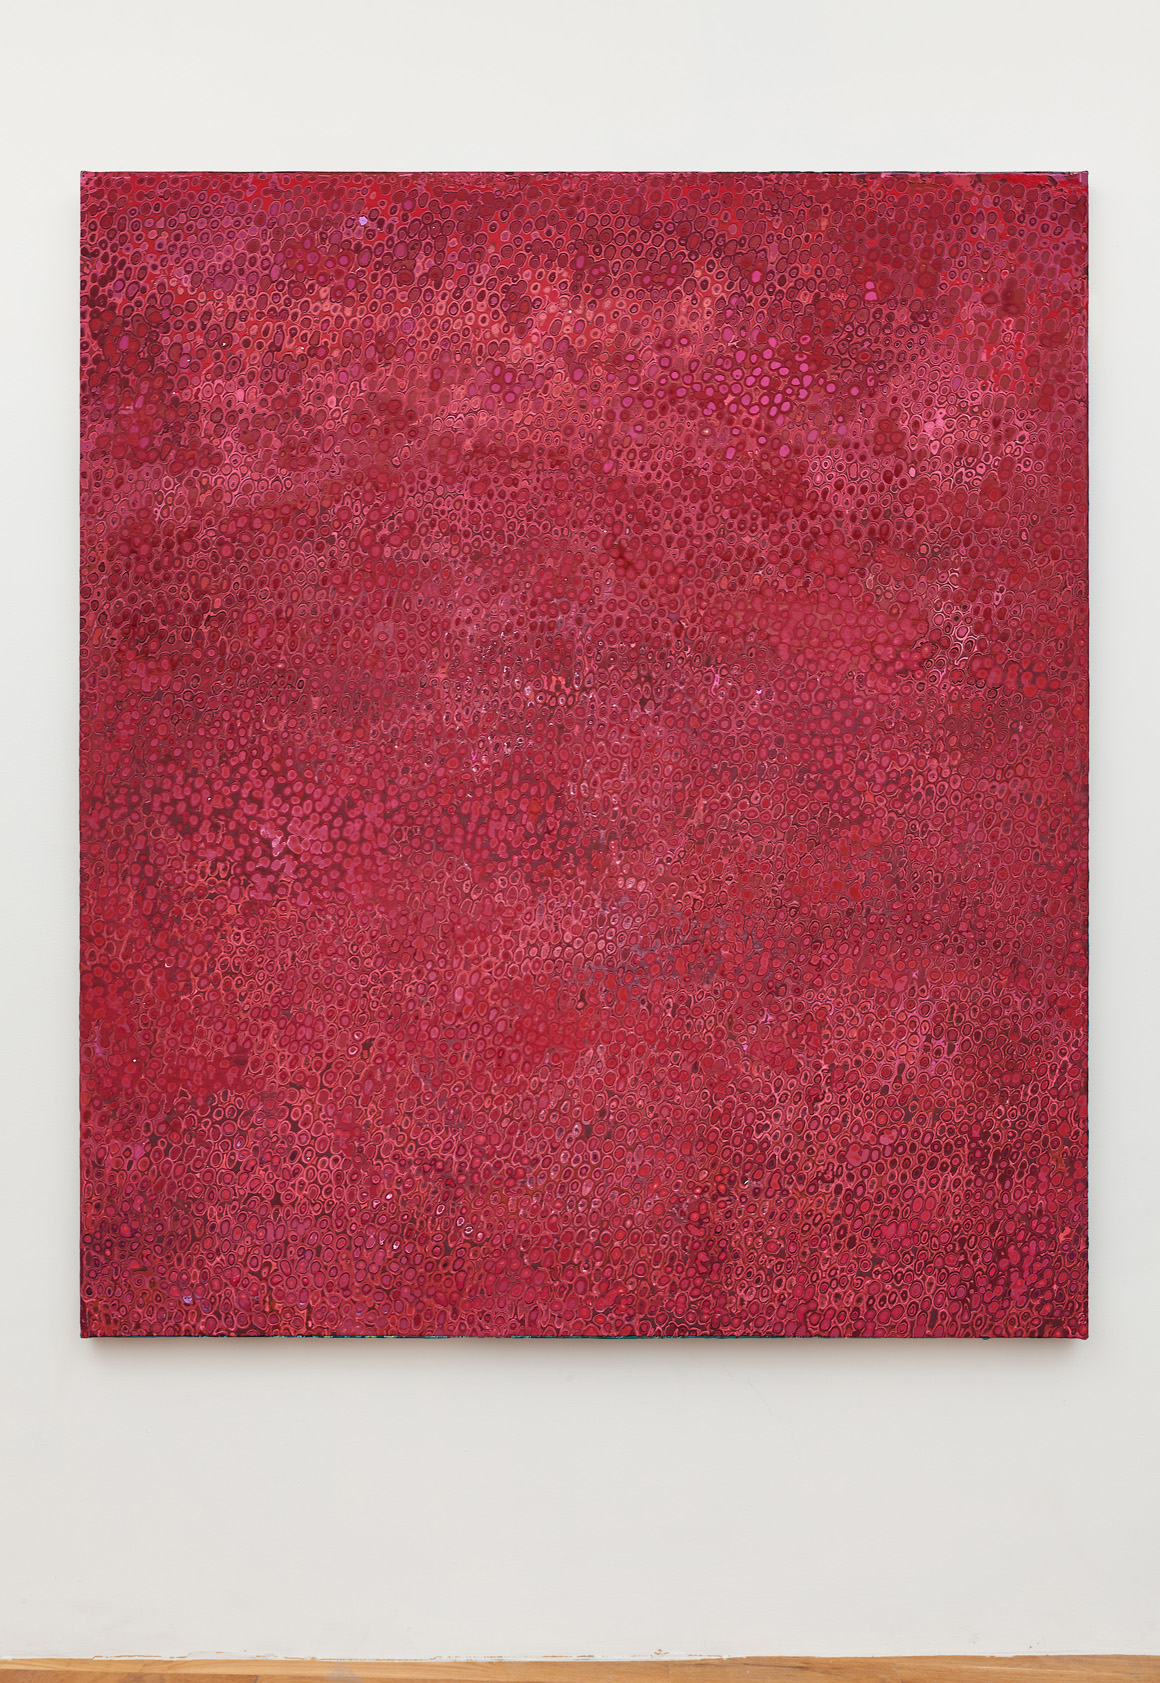 """<p><span class=""""name"""">Andrew Jensdotter</span><br><em>Red 75</em><span class='media'>Carved latex on canvas</span>80 x 68 in (203.2 x 172.7 cm)<br>2018<br><a class='inquire' href='mailto:info@gildargallery.com?subject=Artwork Inquiry AJEN0052&body=I am interested in finding out more about Red 75 by Andrew Jensdotter'>Inquire</a></p>"""